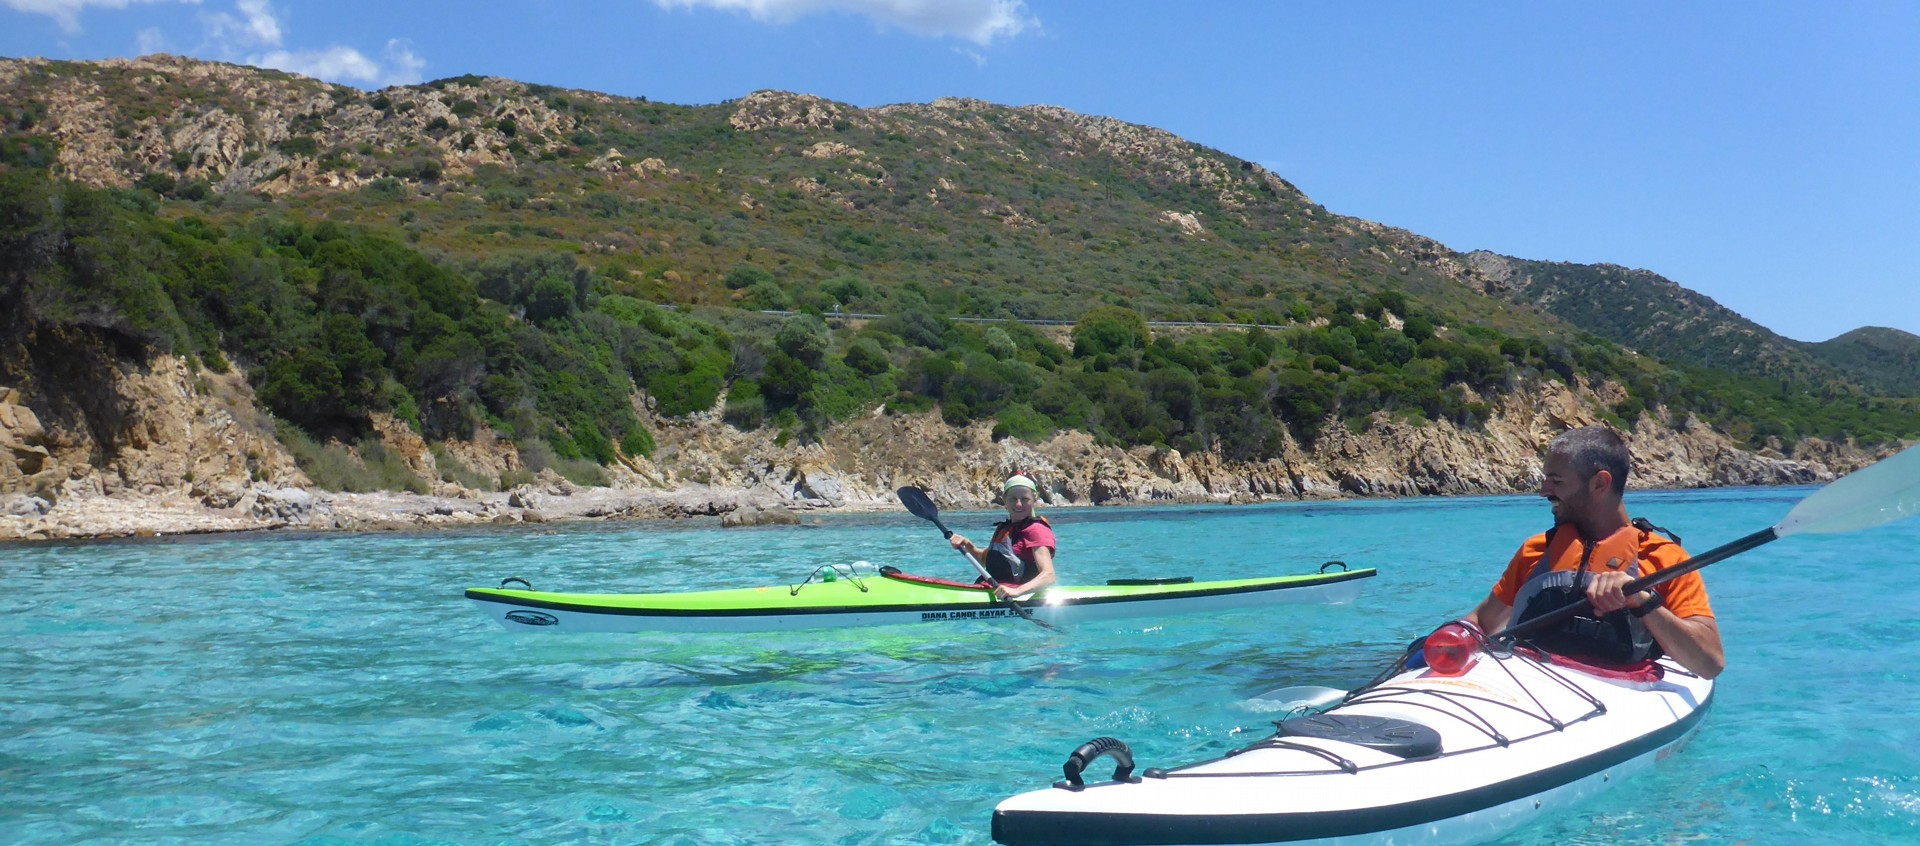 TUERREDDA MAIN.JPG - Sardinia - Southern Sea Kayaking - Kayaking